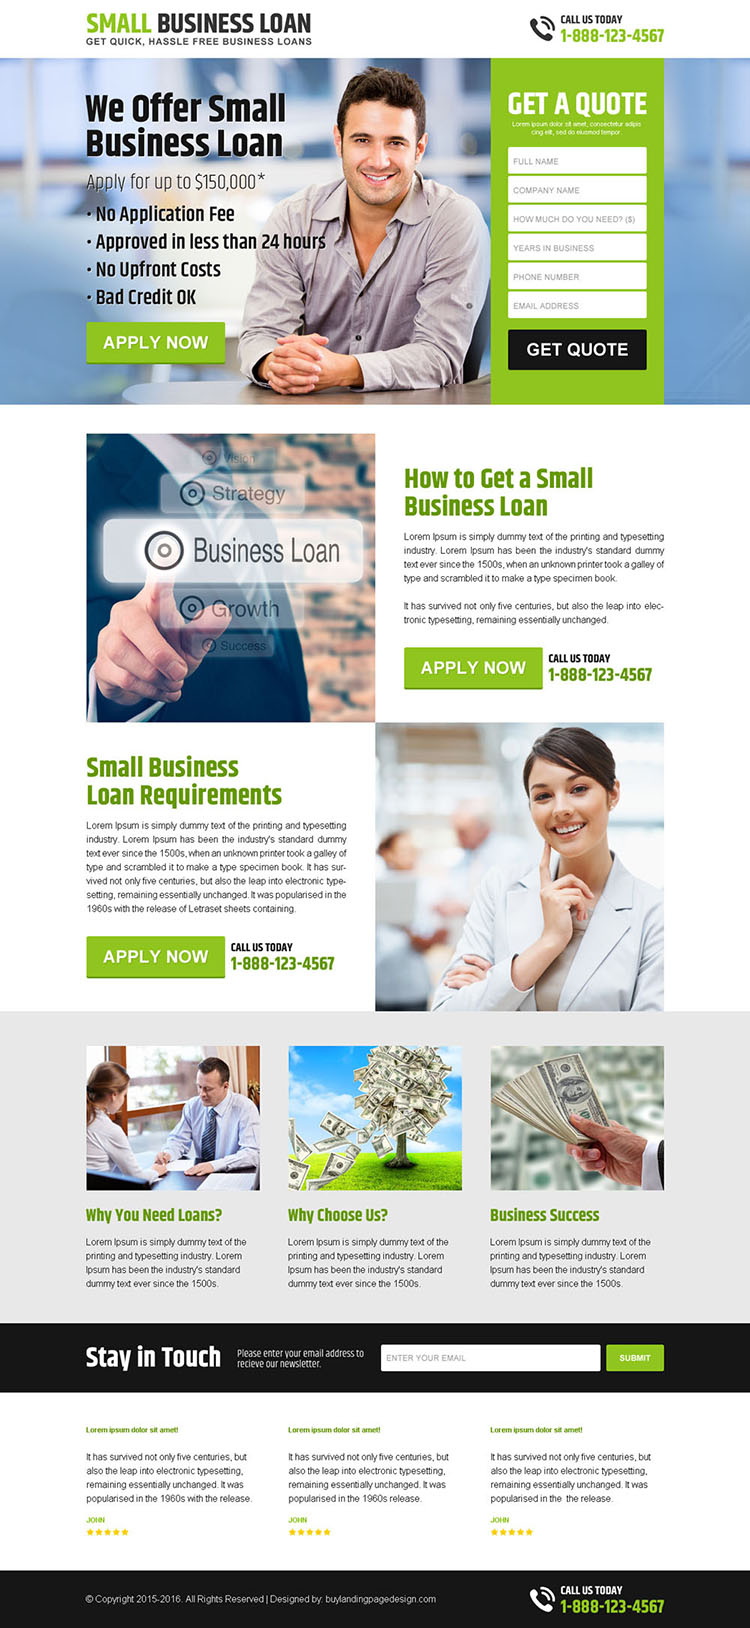 hassle free small business loan lead capturing landing page design